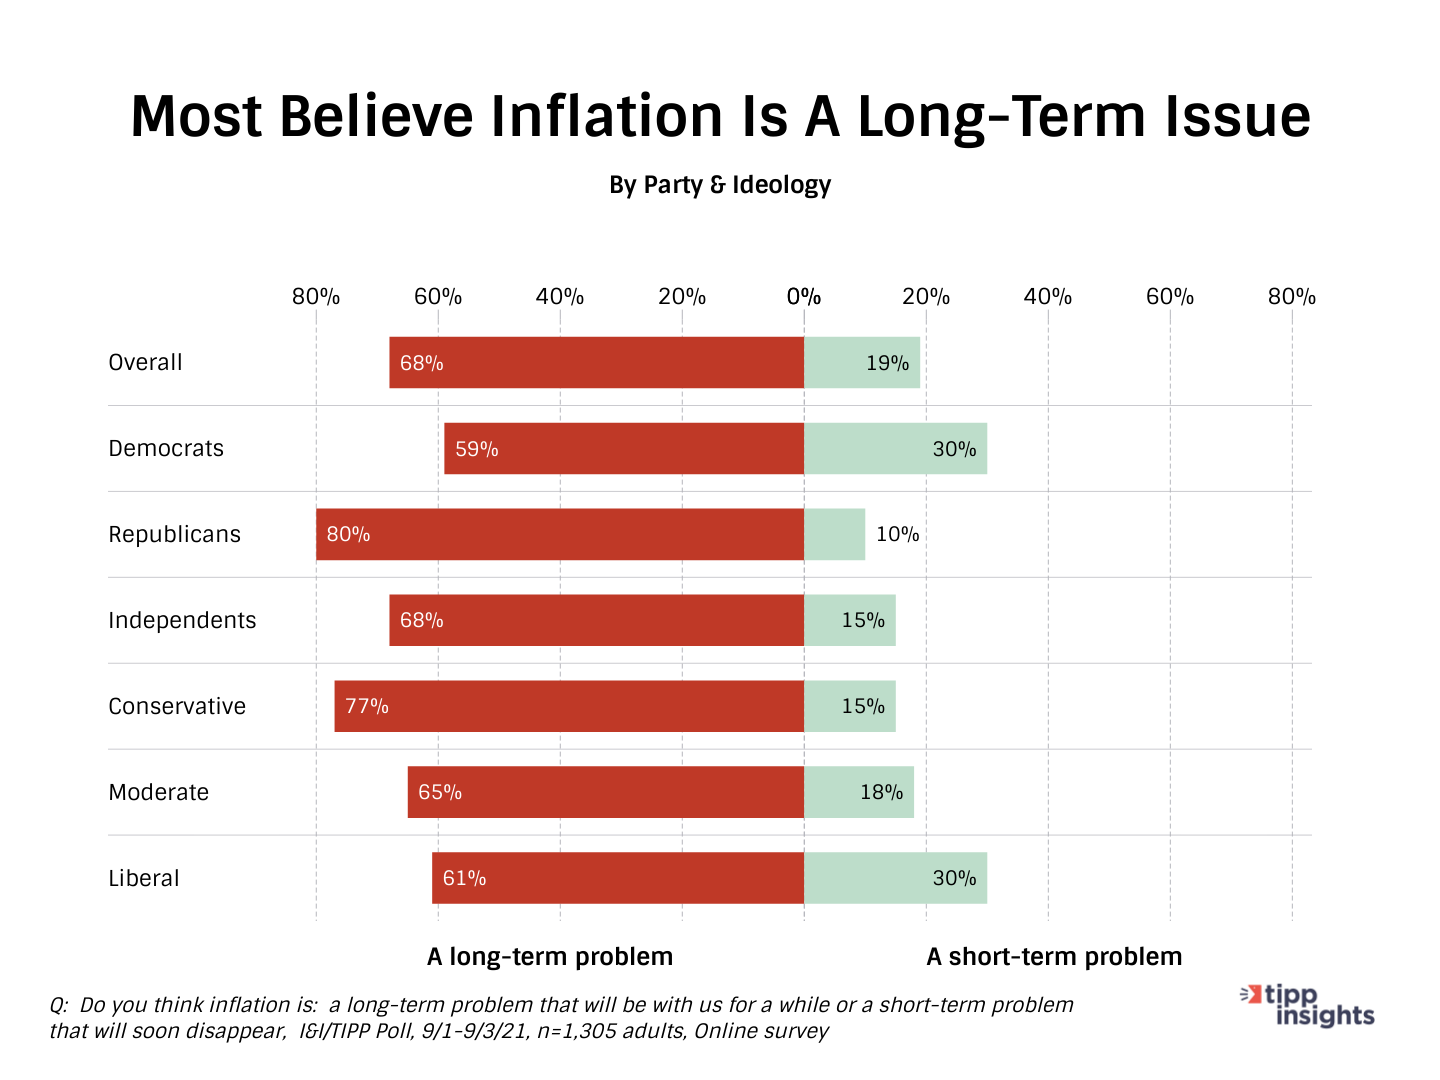 TIPP Poll Results: Most Americans think Inflation is a long-term issue